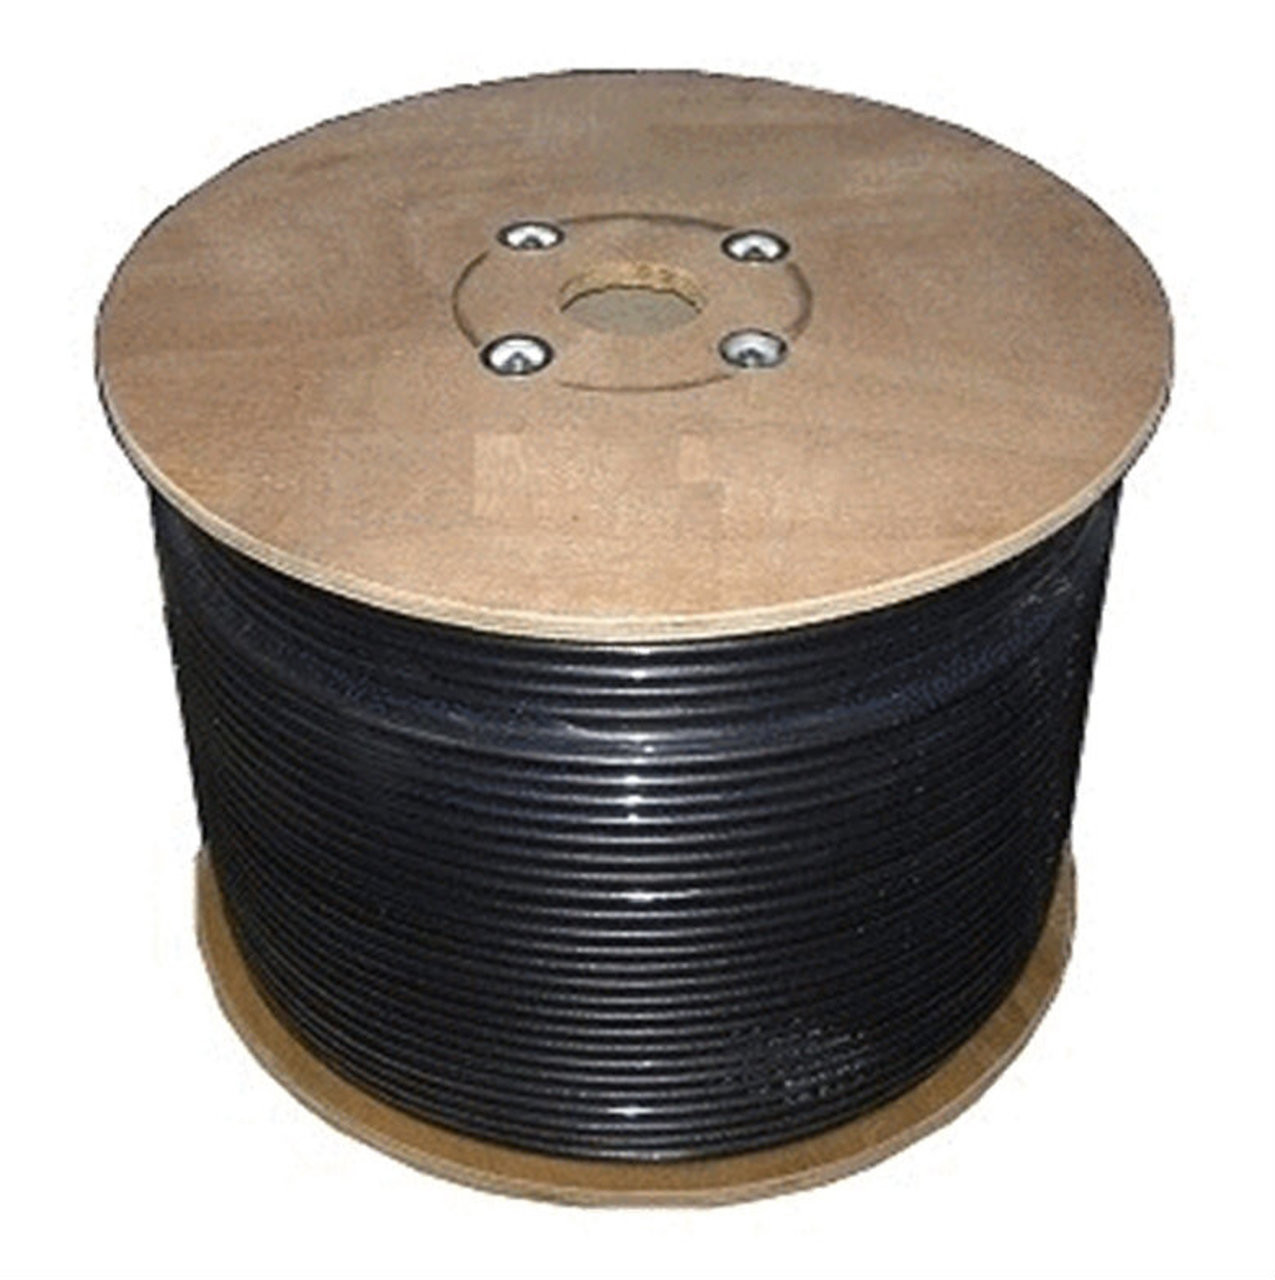 Bolton 400 Low Loss Cable - PE Black Jacket Priced Per Foot